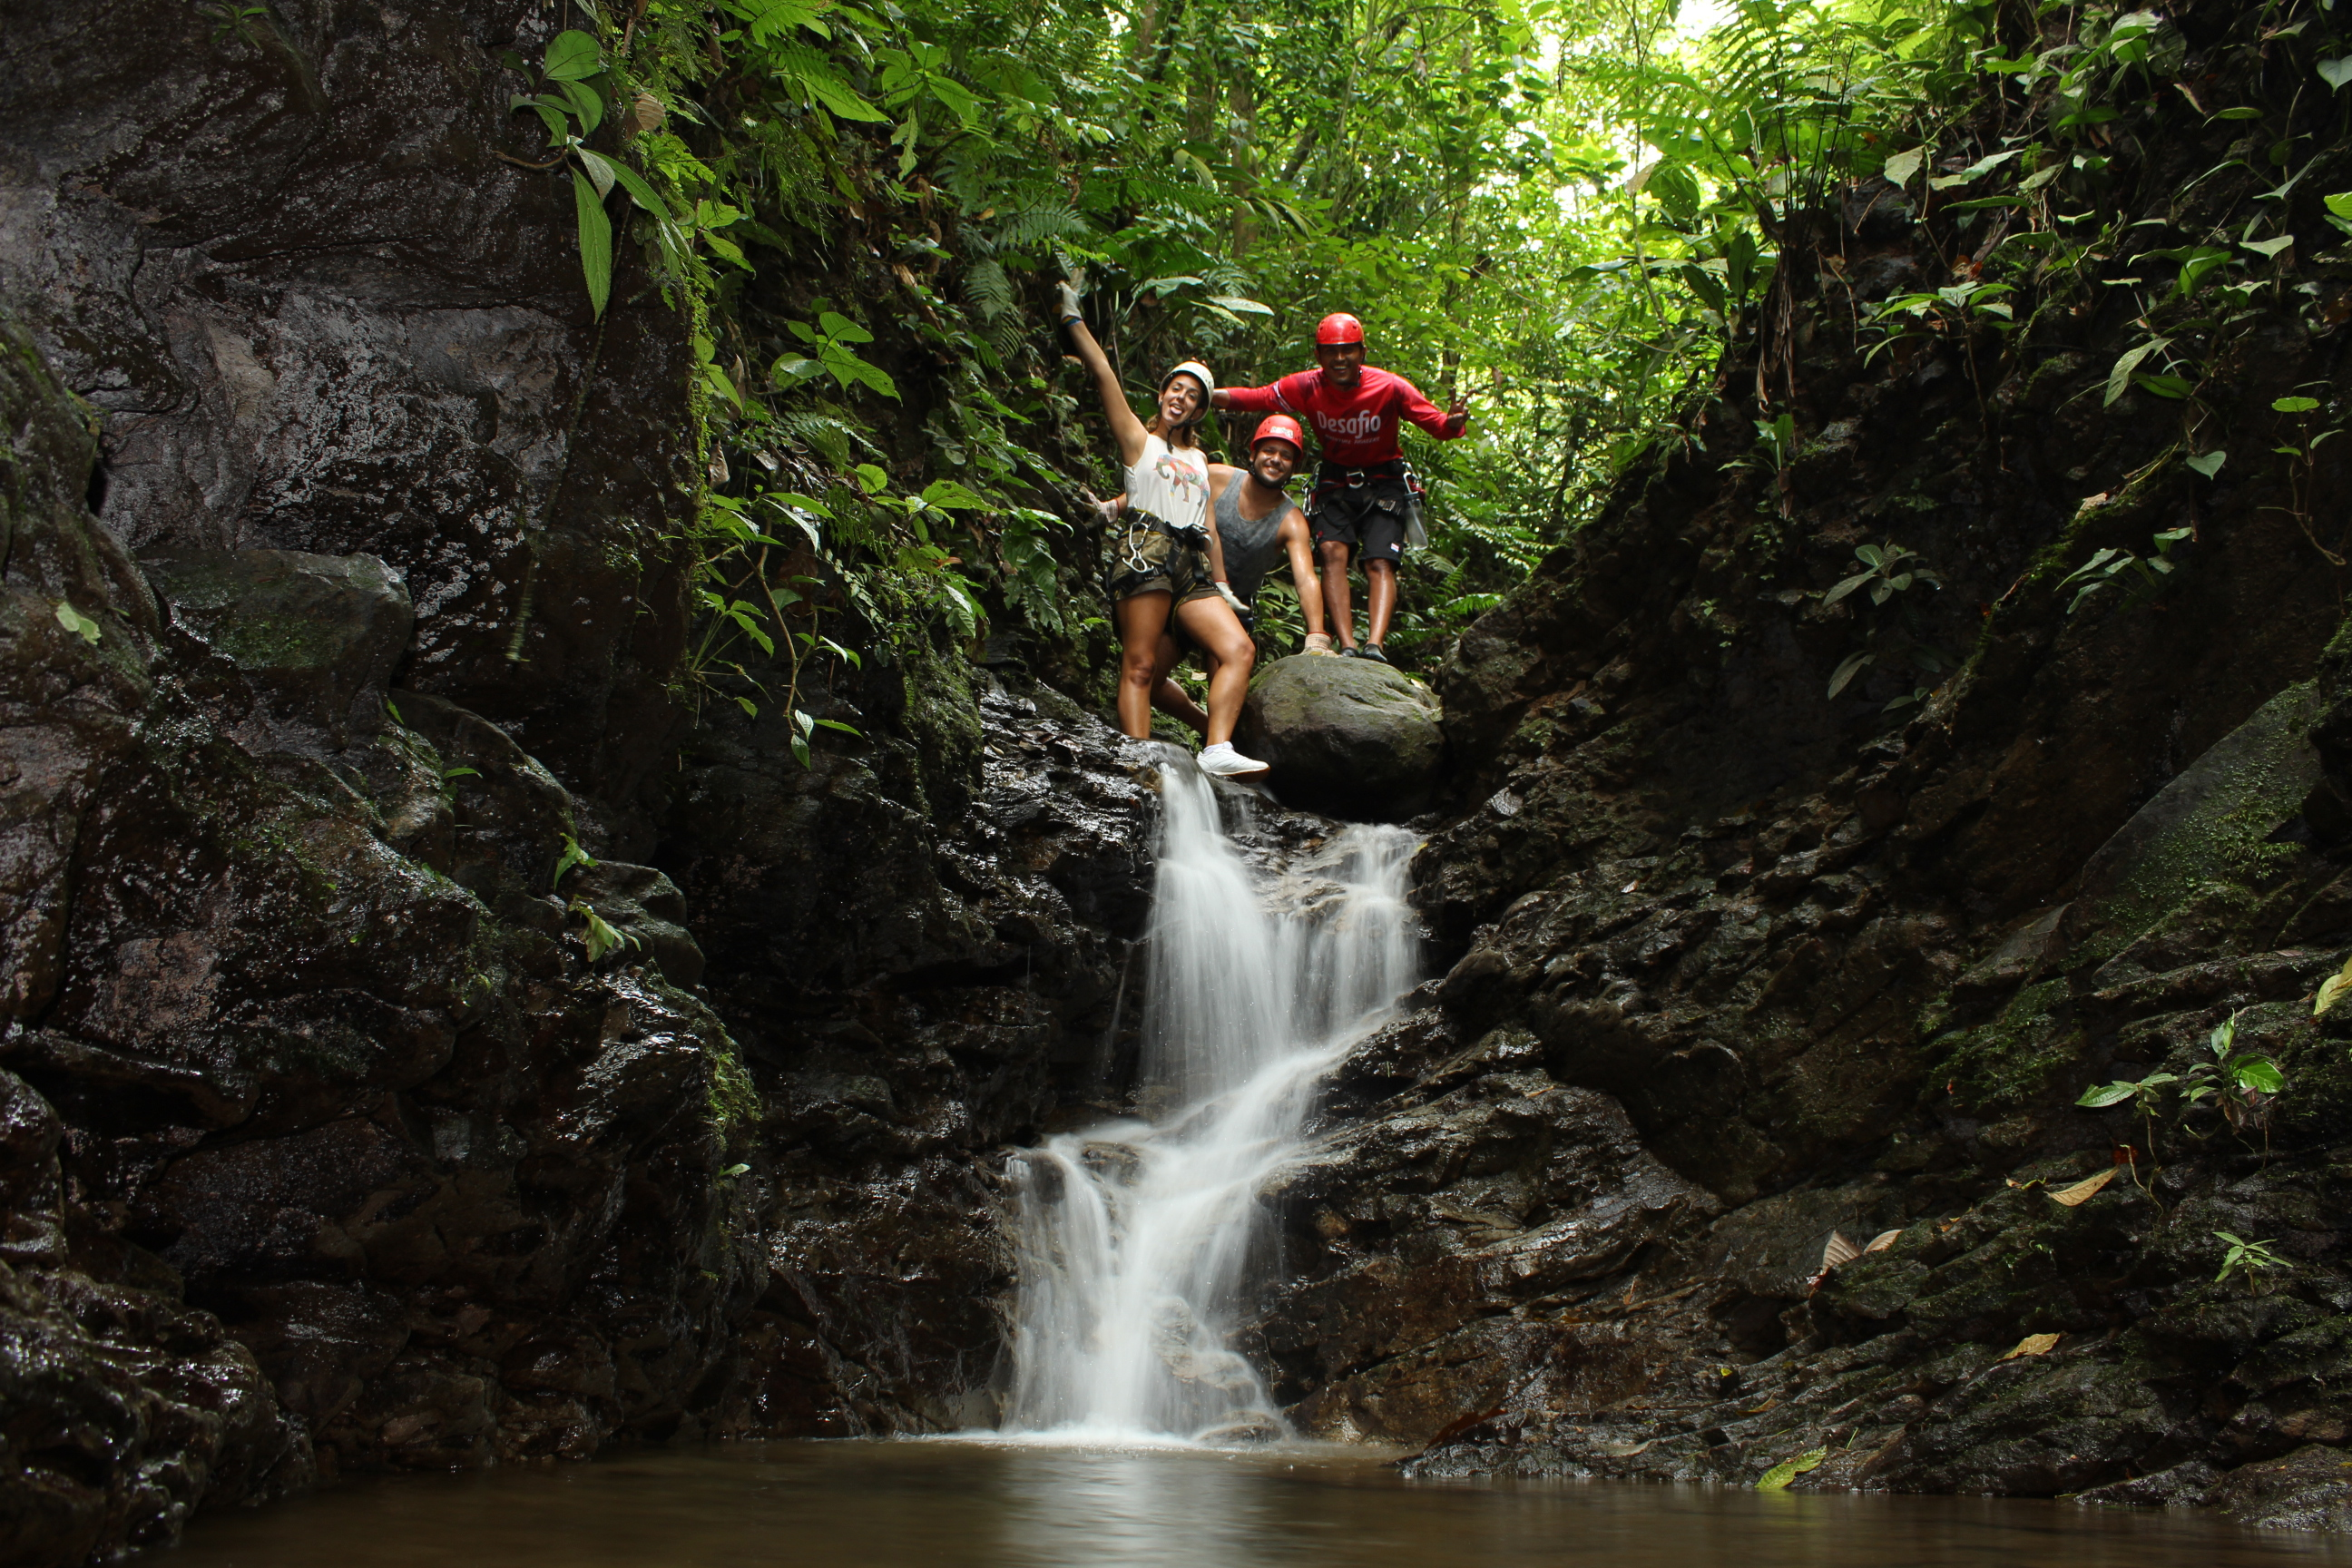 Conquer your fears! Visit Costa RIca